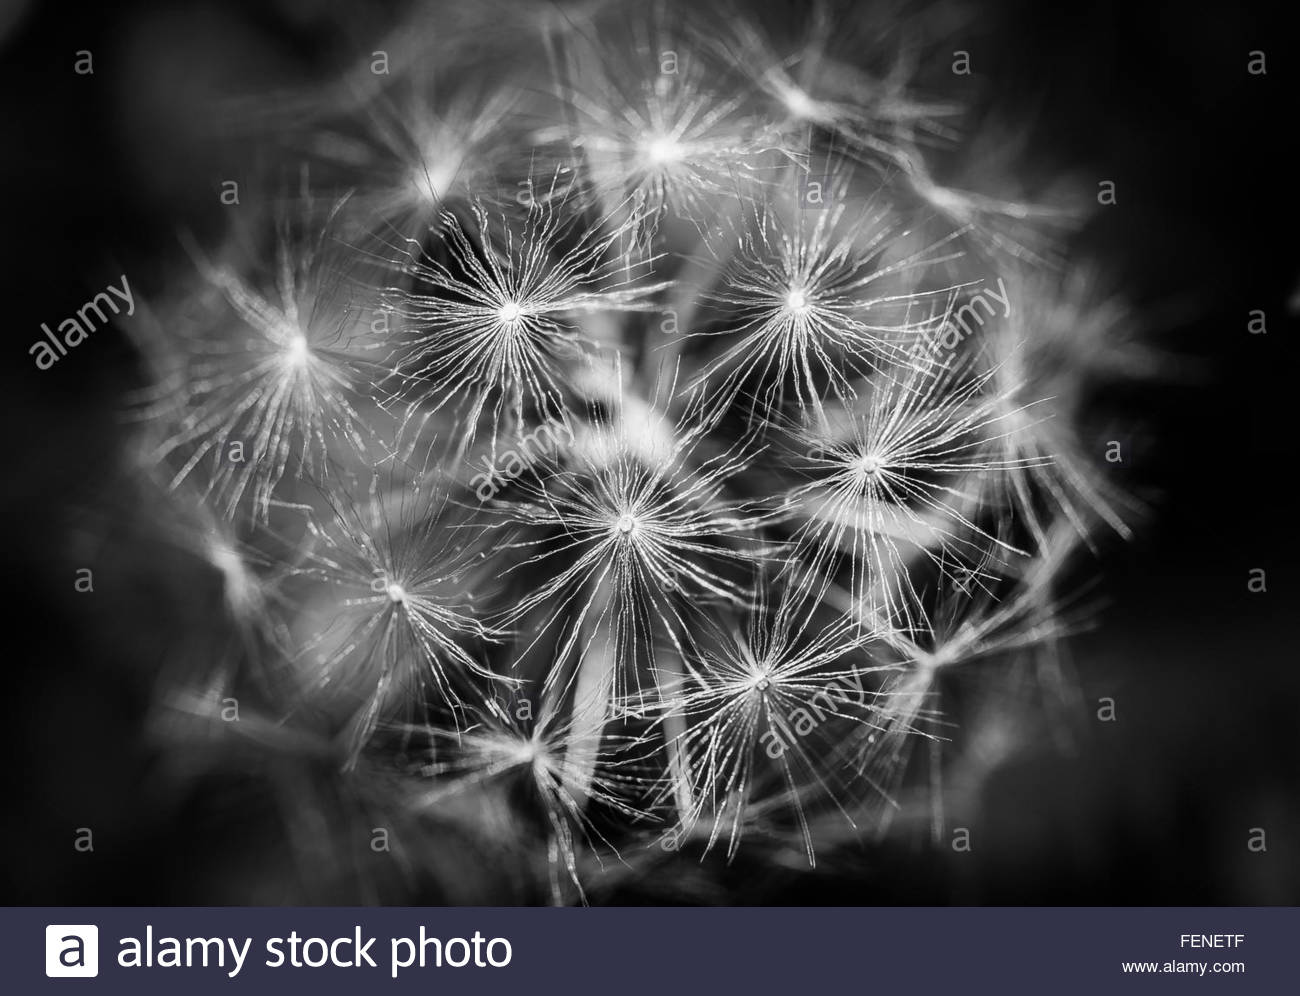 Monochrome, black and white close up detail of dandelion seed head, highlighting the intricate detail and fragility - Stock Image